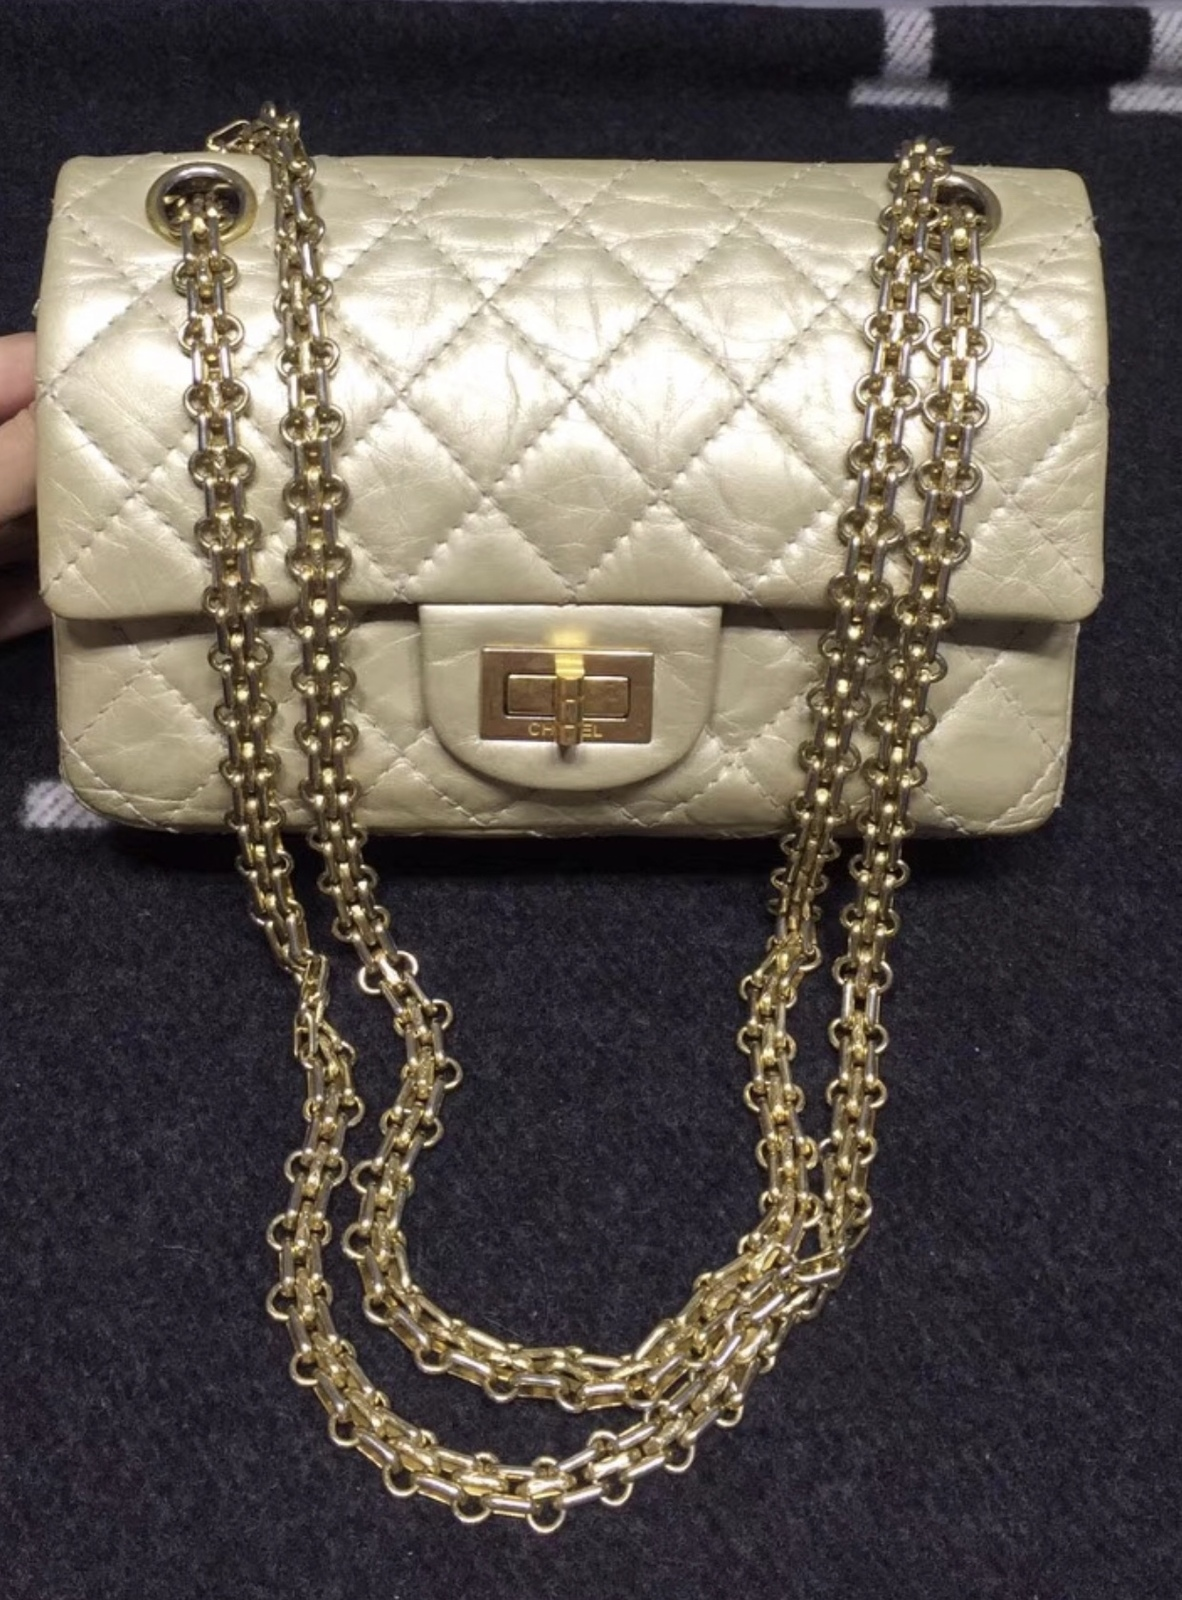 Authentic Chanel Classic 2.55 Reissue Small 20CM Double Flap Bag Champagne Gold